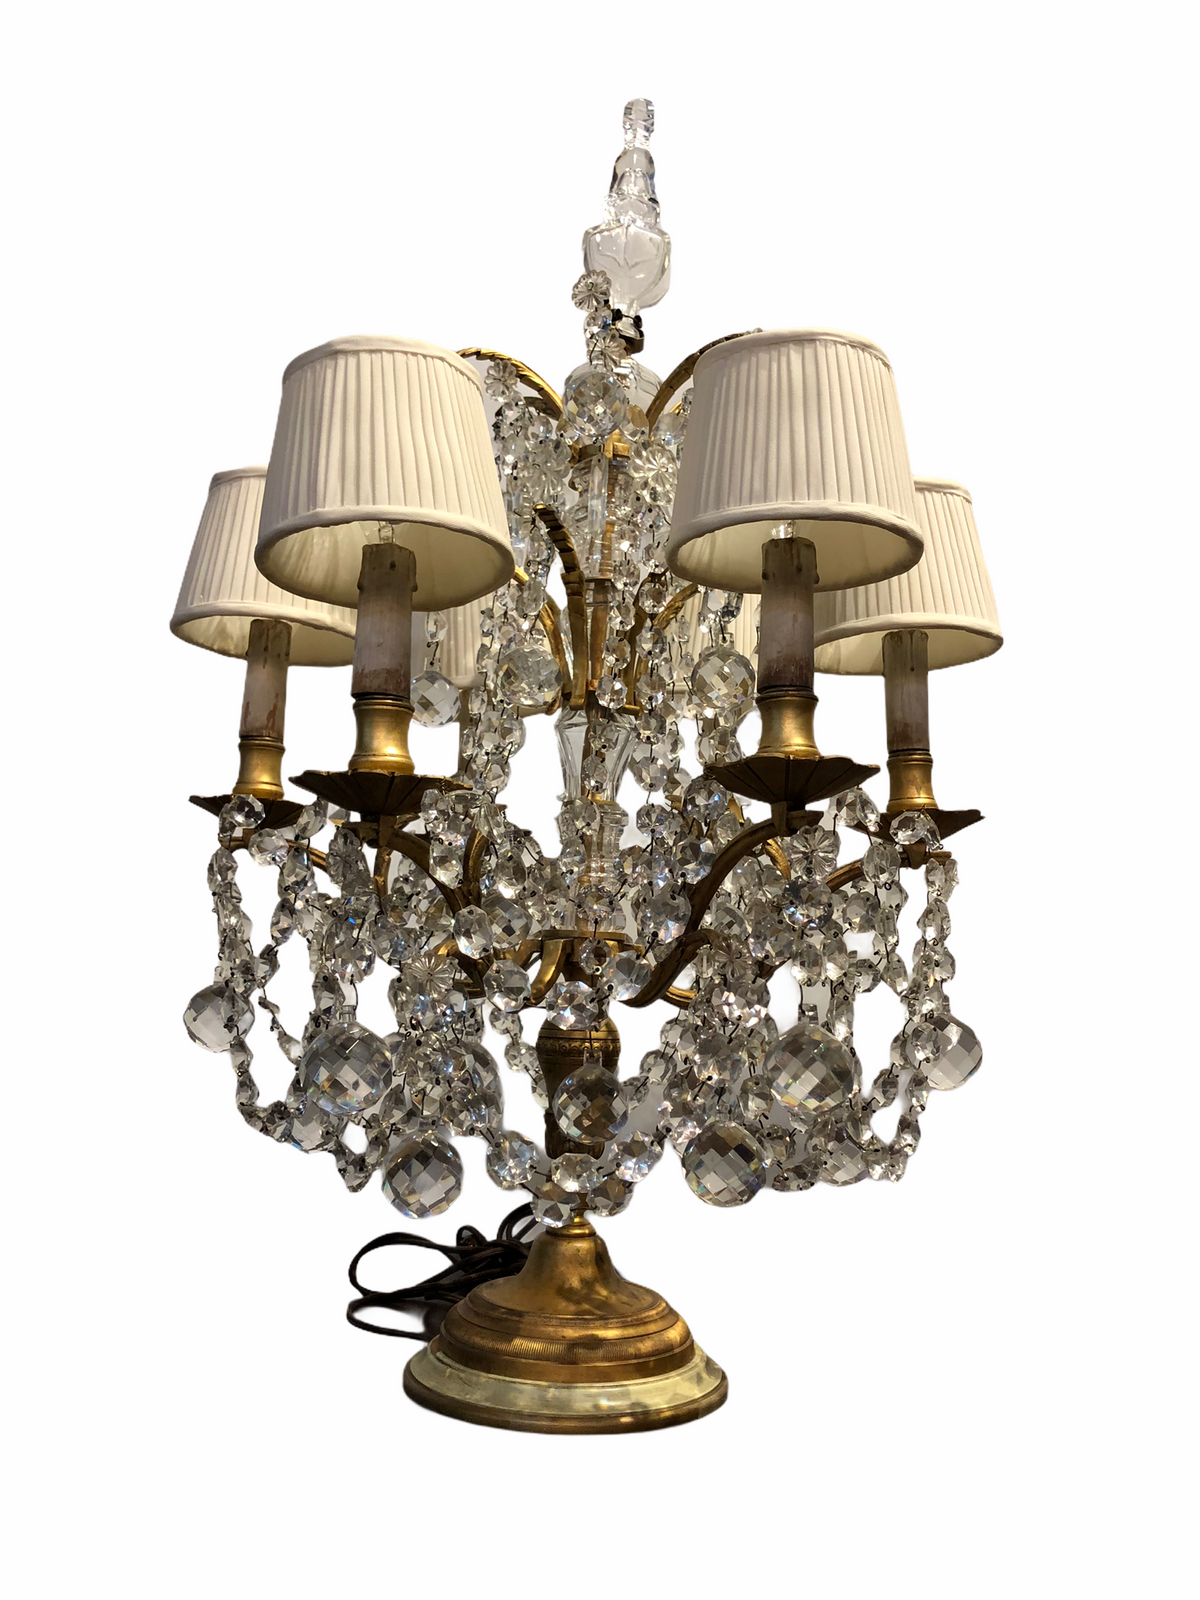 6 Light Girandole Lamp